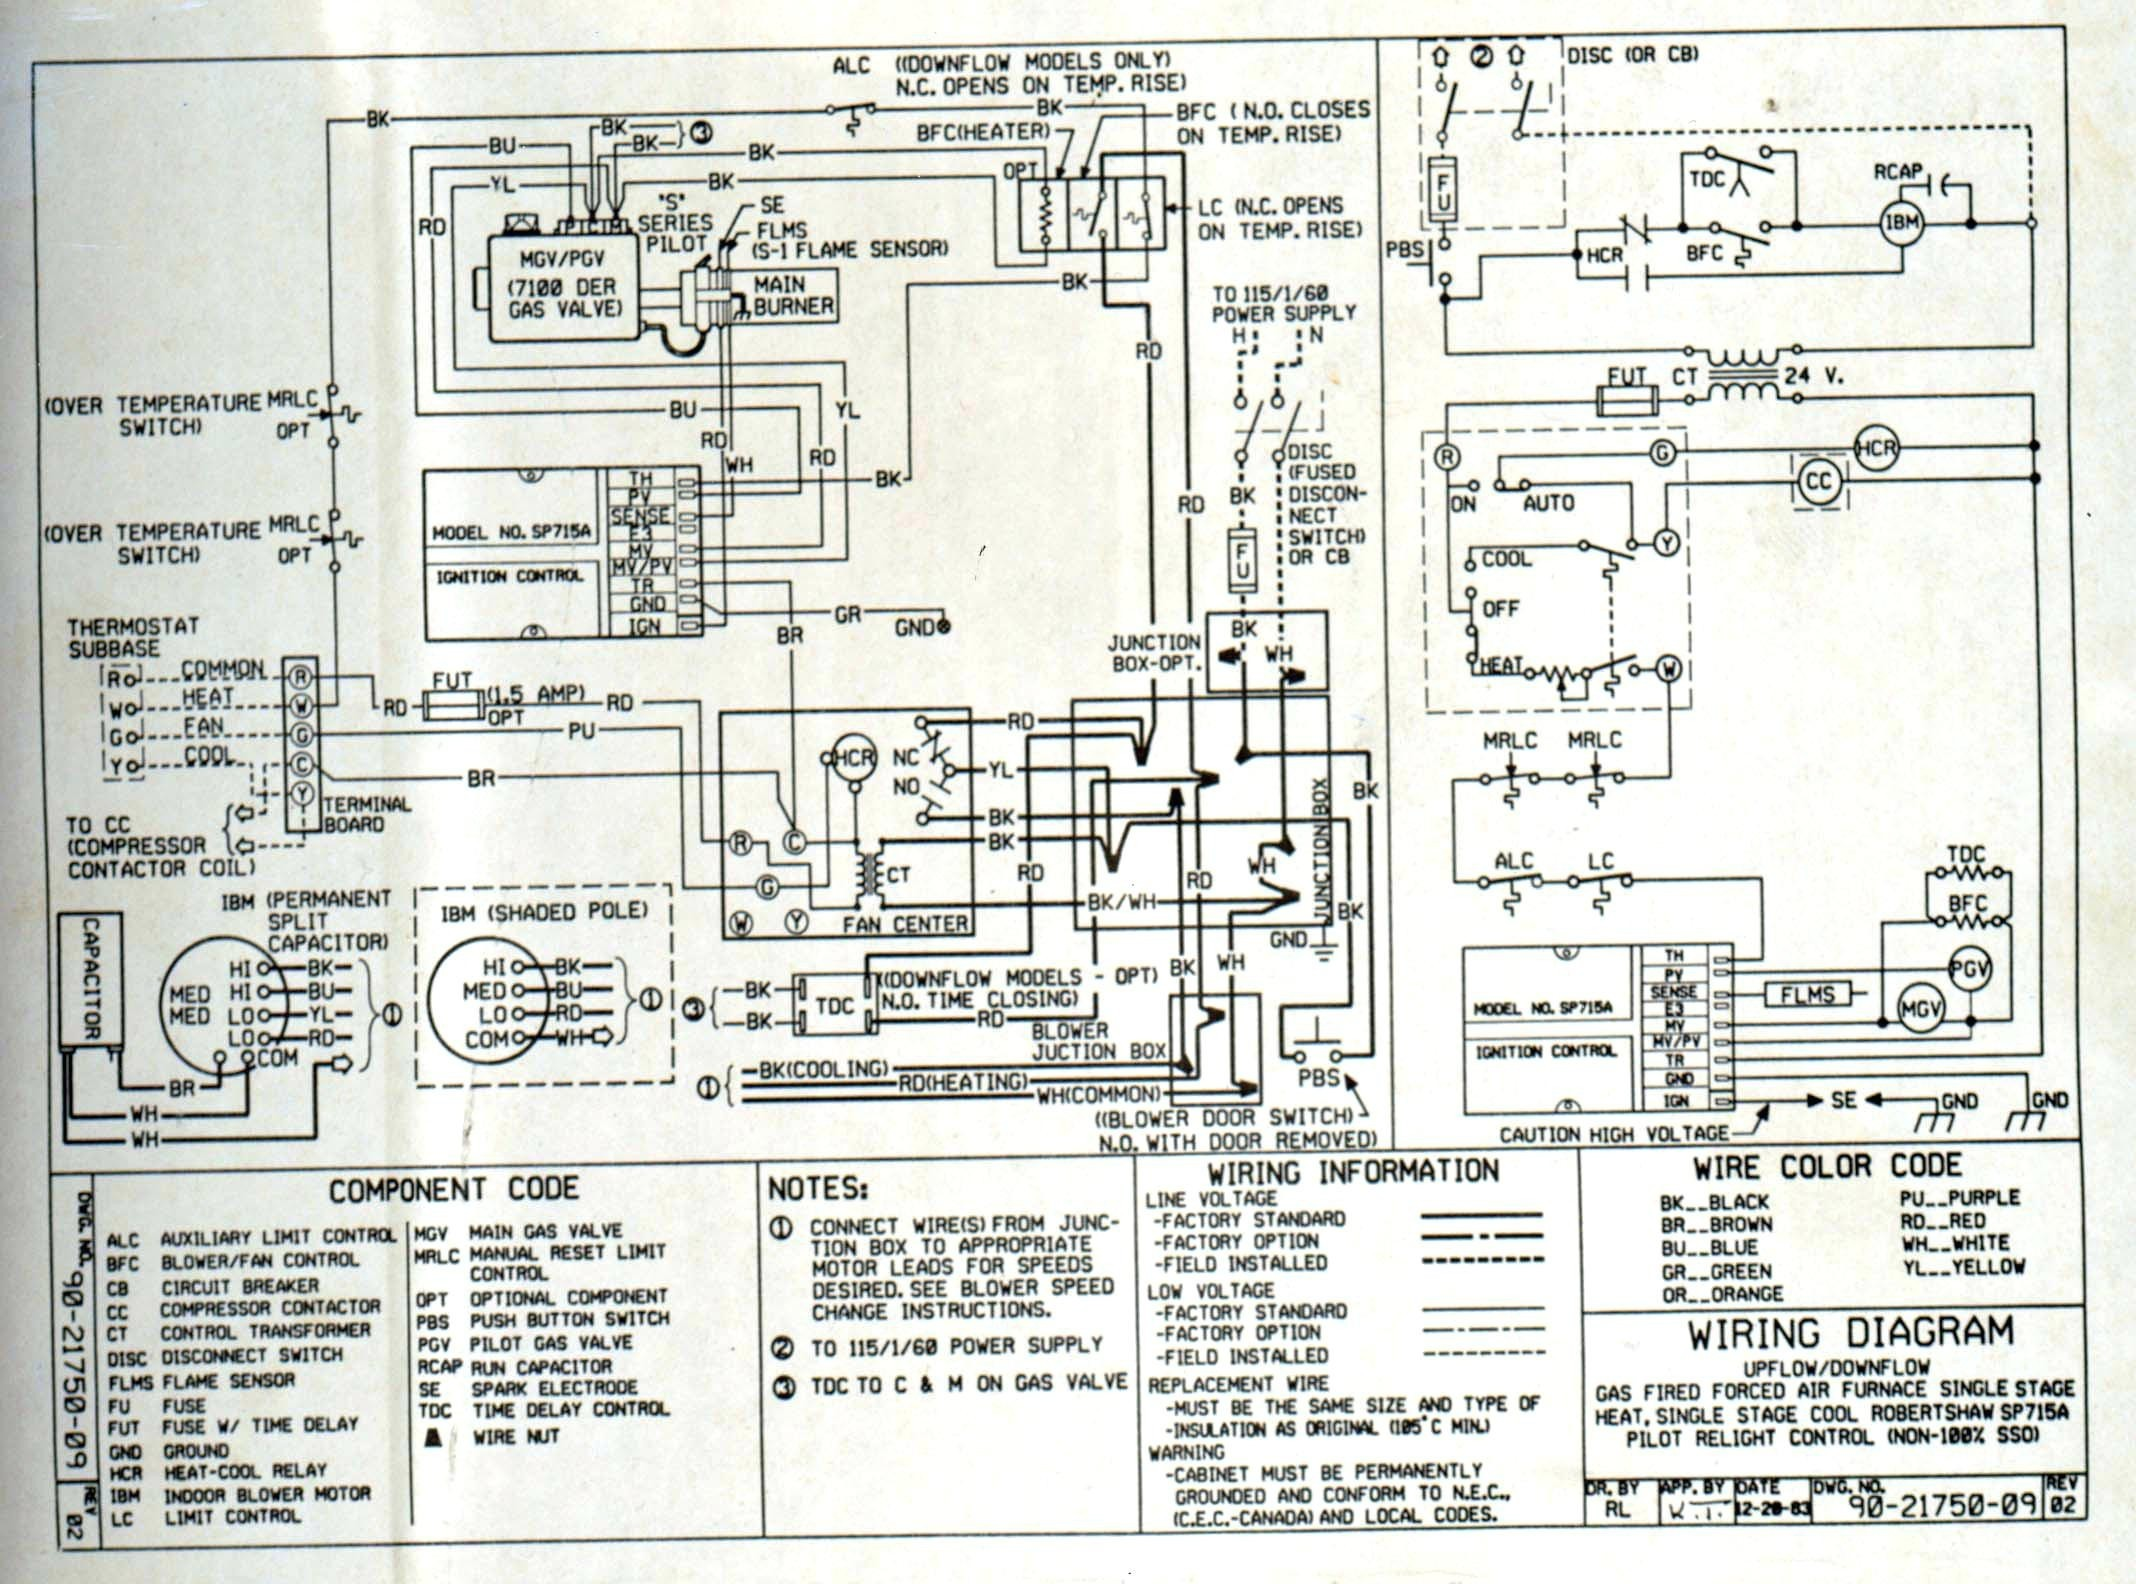 Package Air Conditioning Unit Wiring Diagram Save Carrier Electric Furnace Wiring Diagrams For Payne Wiring Diagram